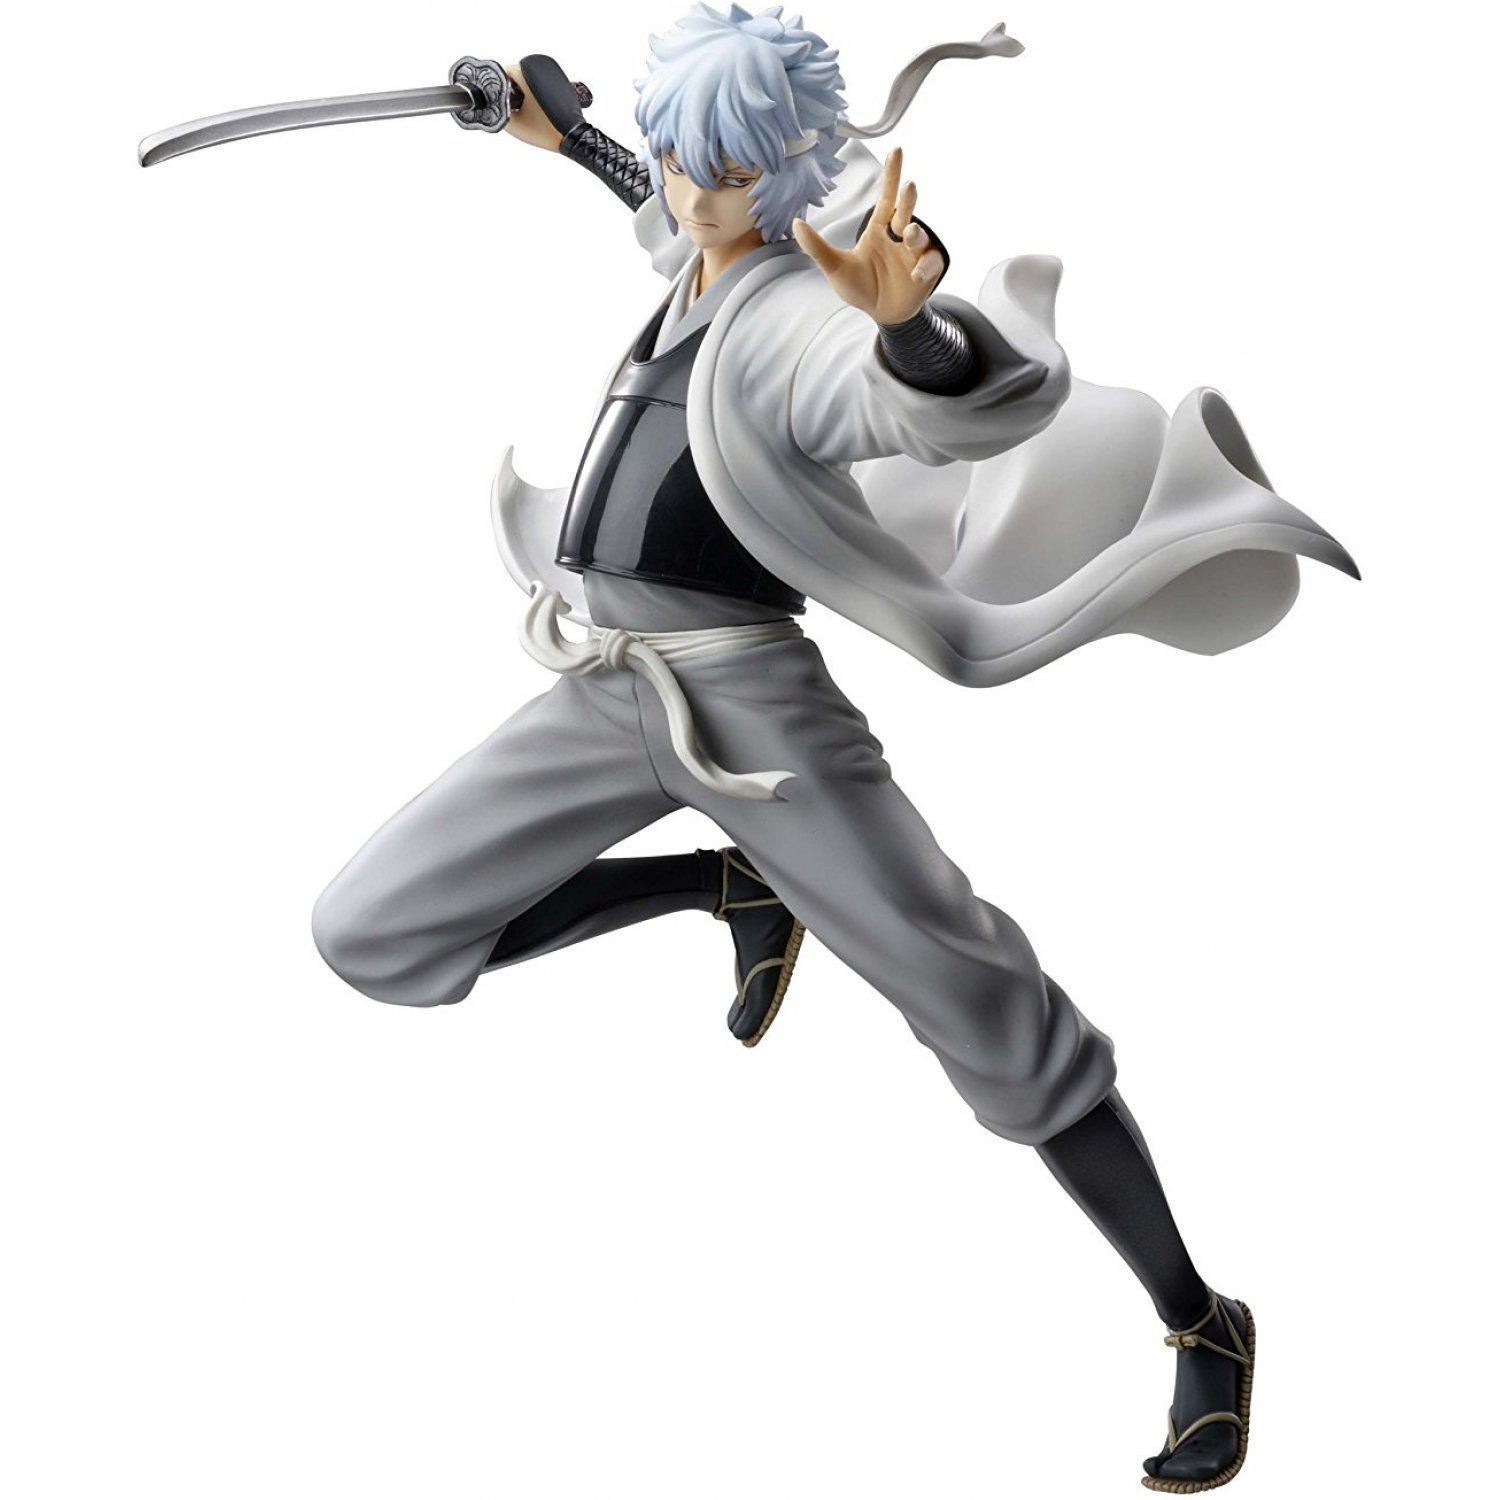 GEM Series Gintama 1/8 Scale Pre-Painted PVC Figure